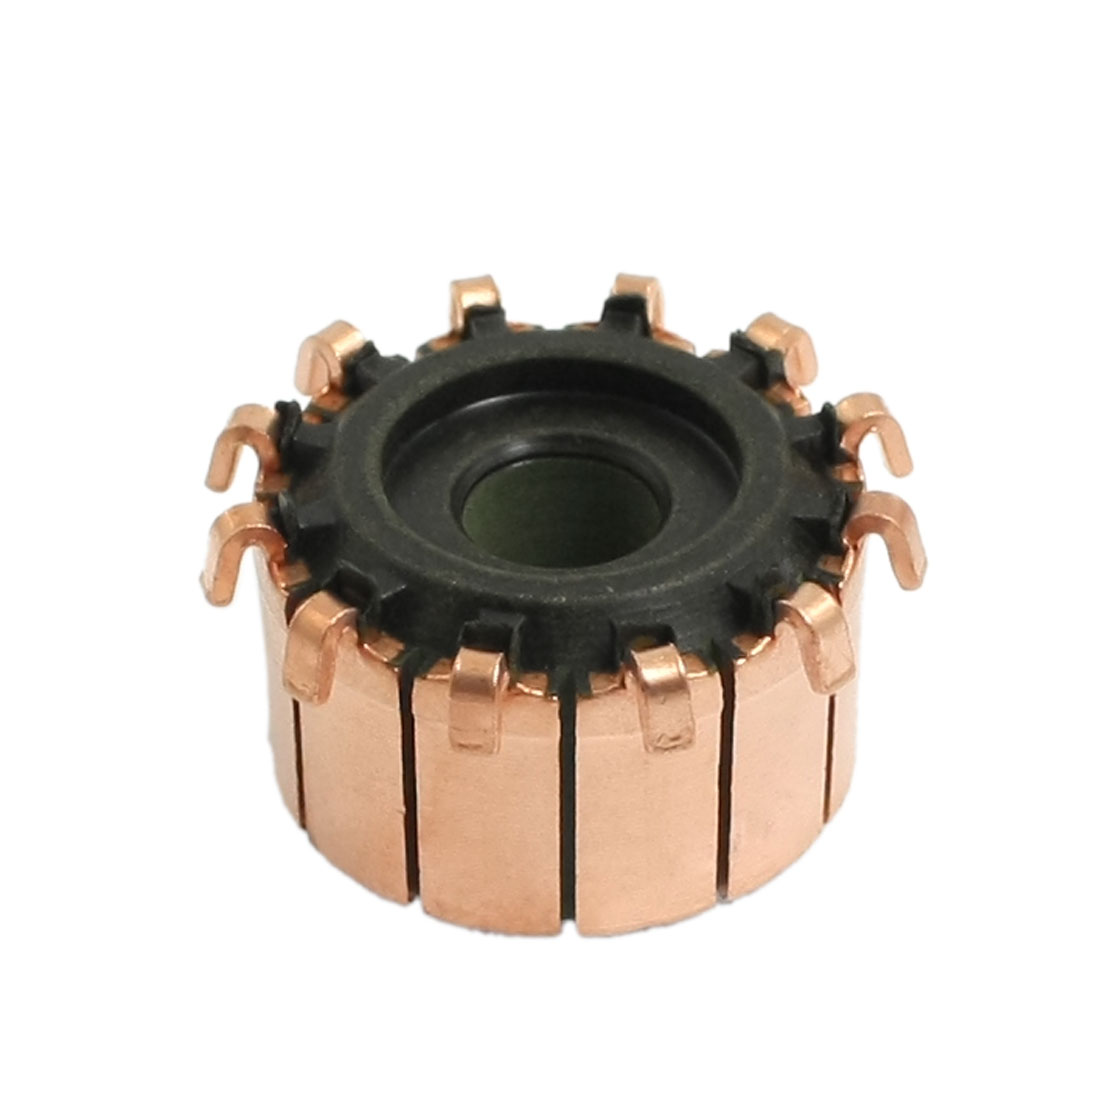 6mm x 18.9mm x 11.7mm 12 Gear Tooth Copper Shell Mounted On Armature Commutator